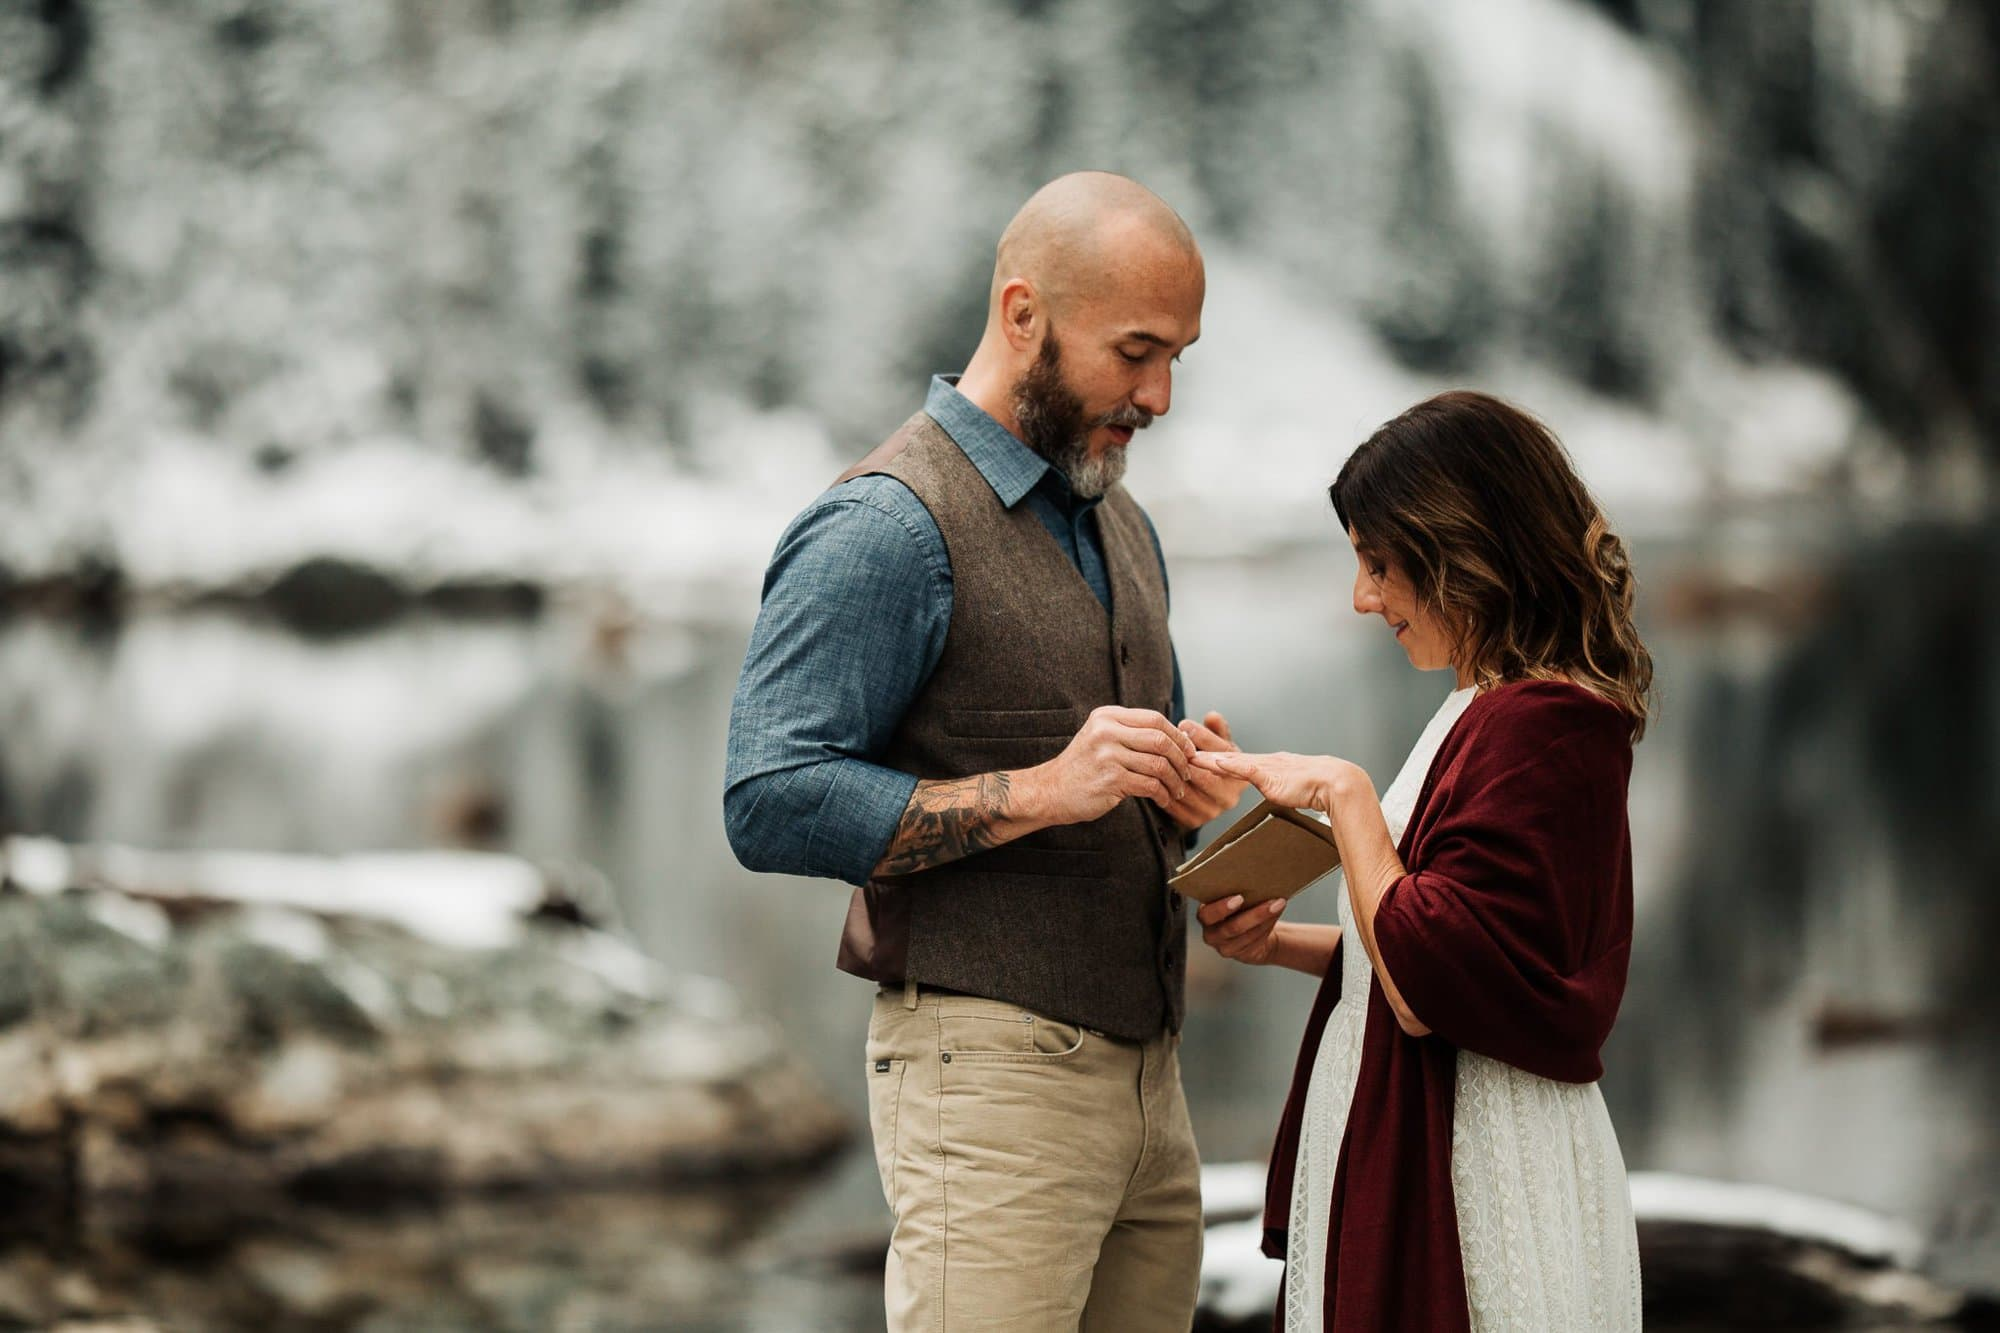 ROCKY MOUNTAIN ELOPEMENT| JASON + CHRISTINE |DREAM LAKE ELOPEMENT| JASON + CHRISTINE |JUSTYNA E BUTLER PHOTOGRAPHY | ROCKY MOUNTAIN NATIONAL PARK ELOPEMENT | COLORADO MOUNTAIN ADVENTUROUS ELOPEMENT PHOTOGRAPHER